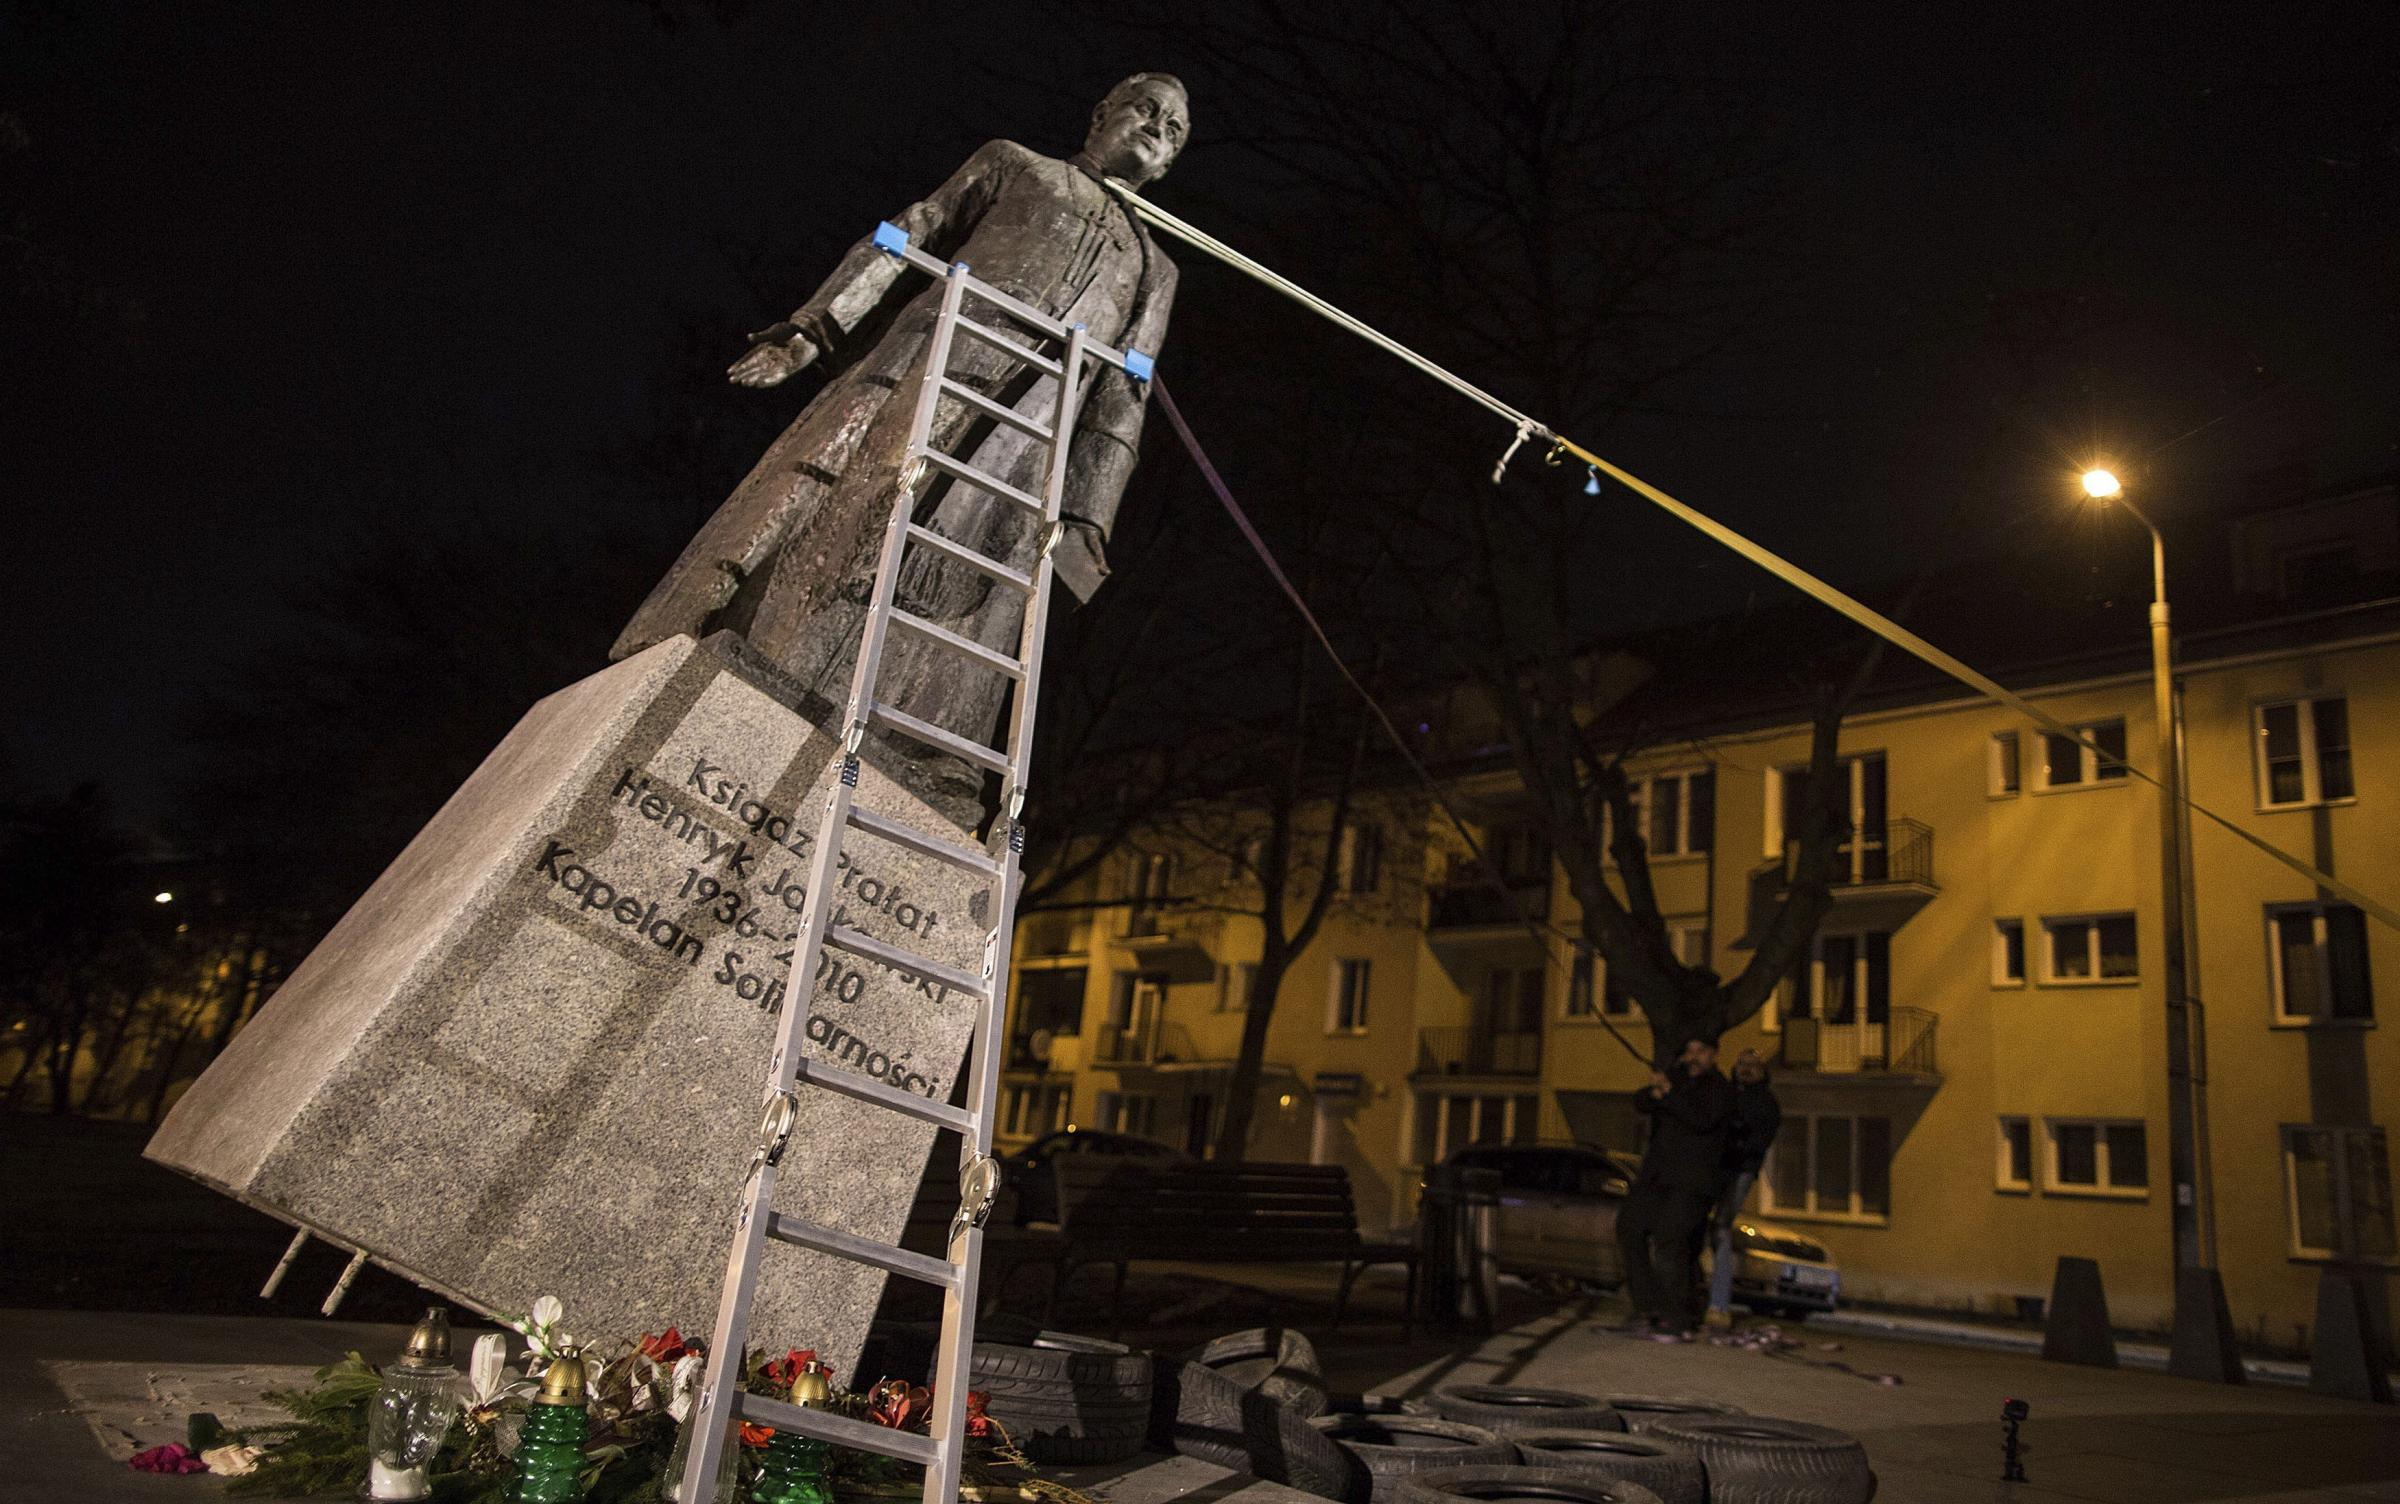 Activists in Poland pull down a statue of a prominent deceased priest, Father Henryk Jankowski, who allegedly abused minors sexually, in Gdansk, Poland